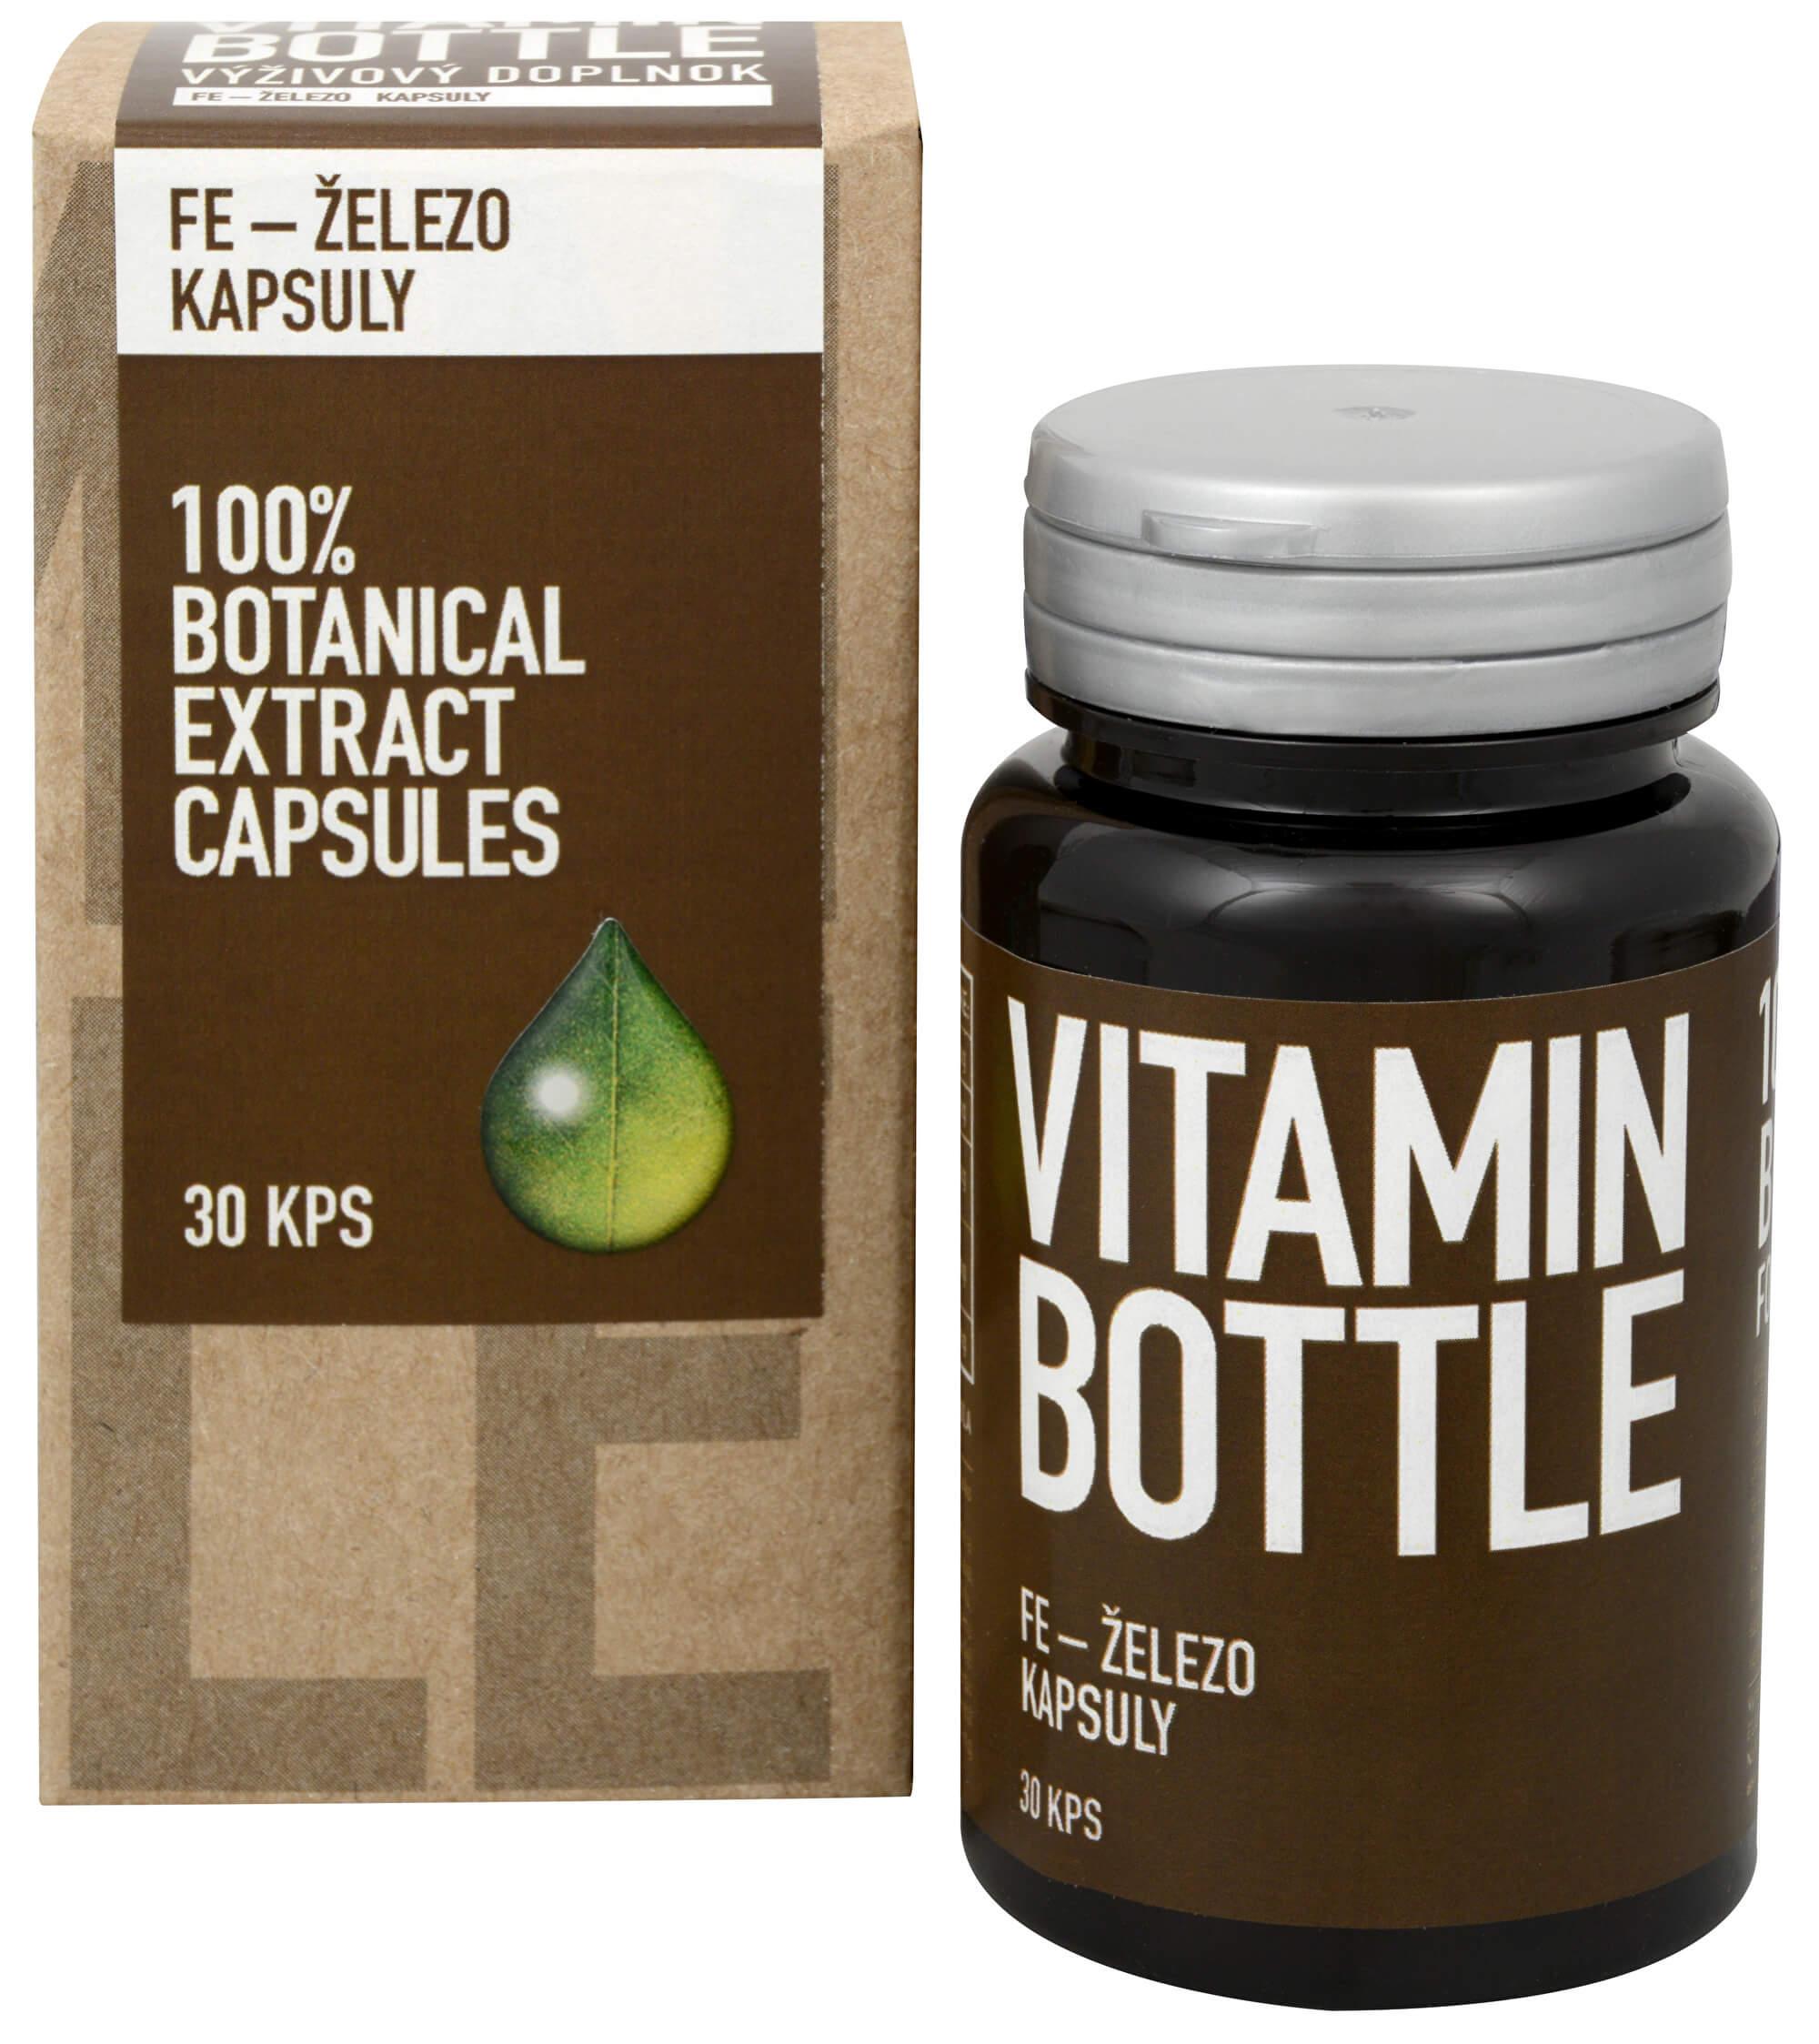 Vitamin Bottle Fe – železo 30 kapslí